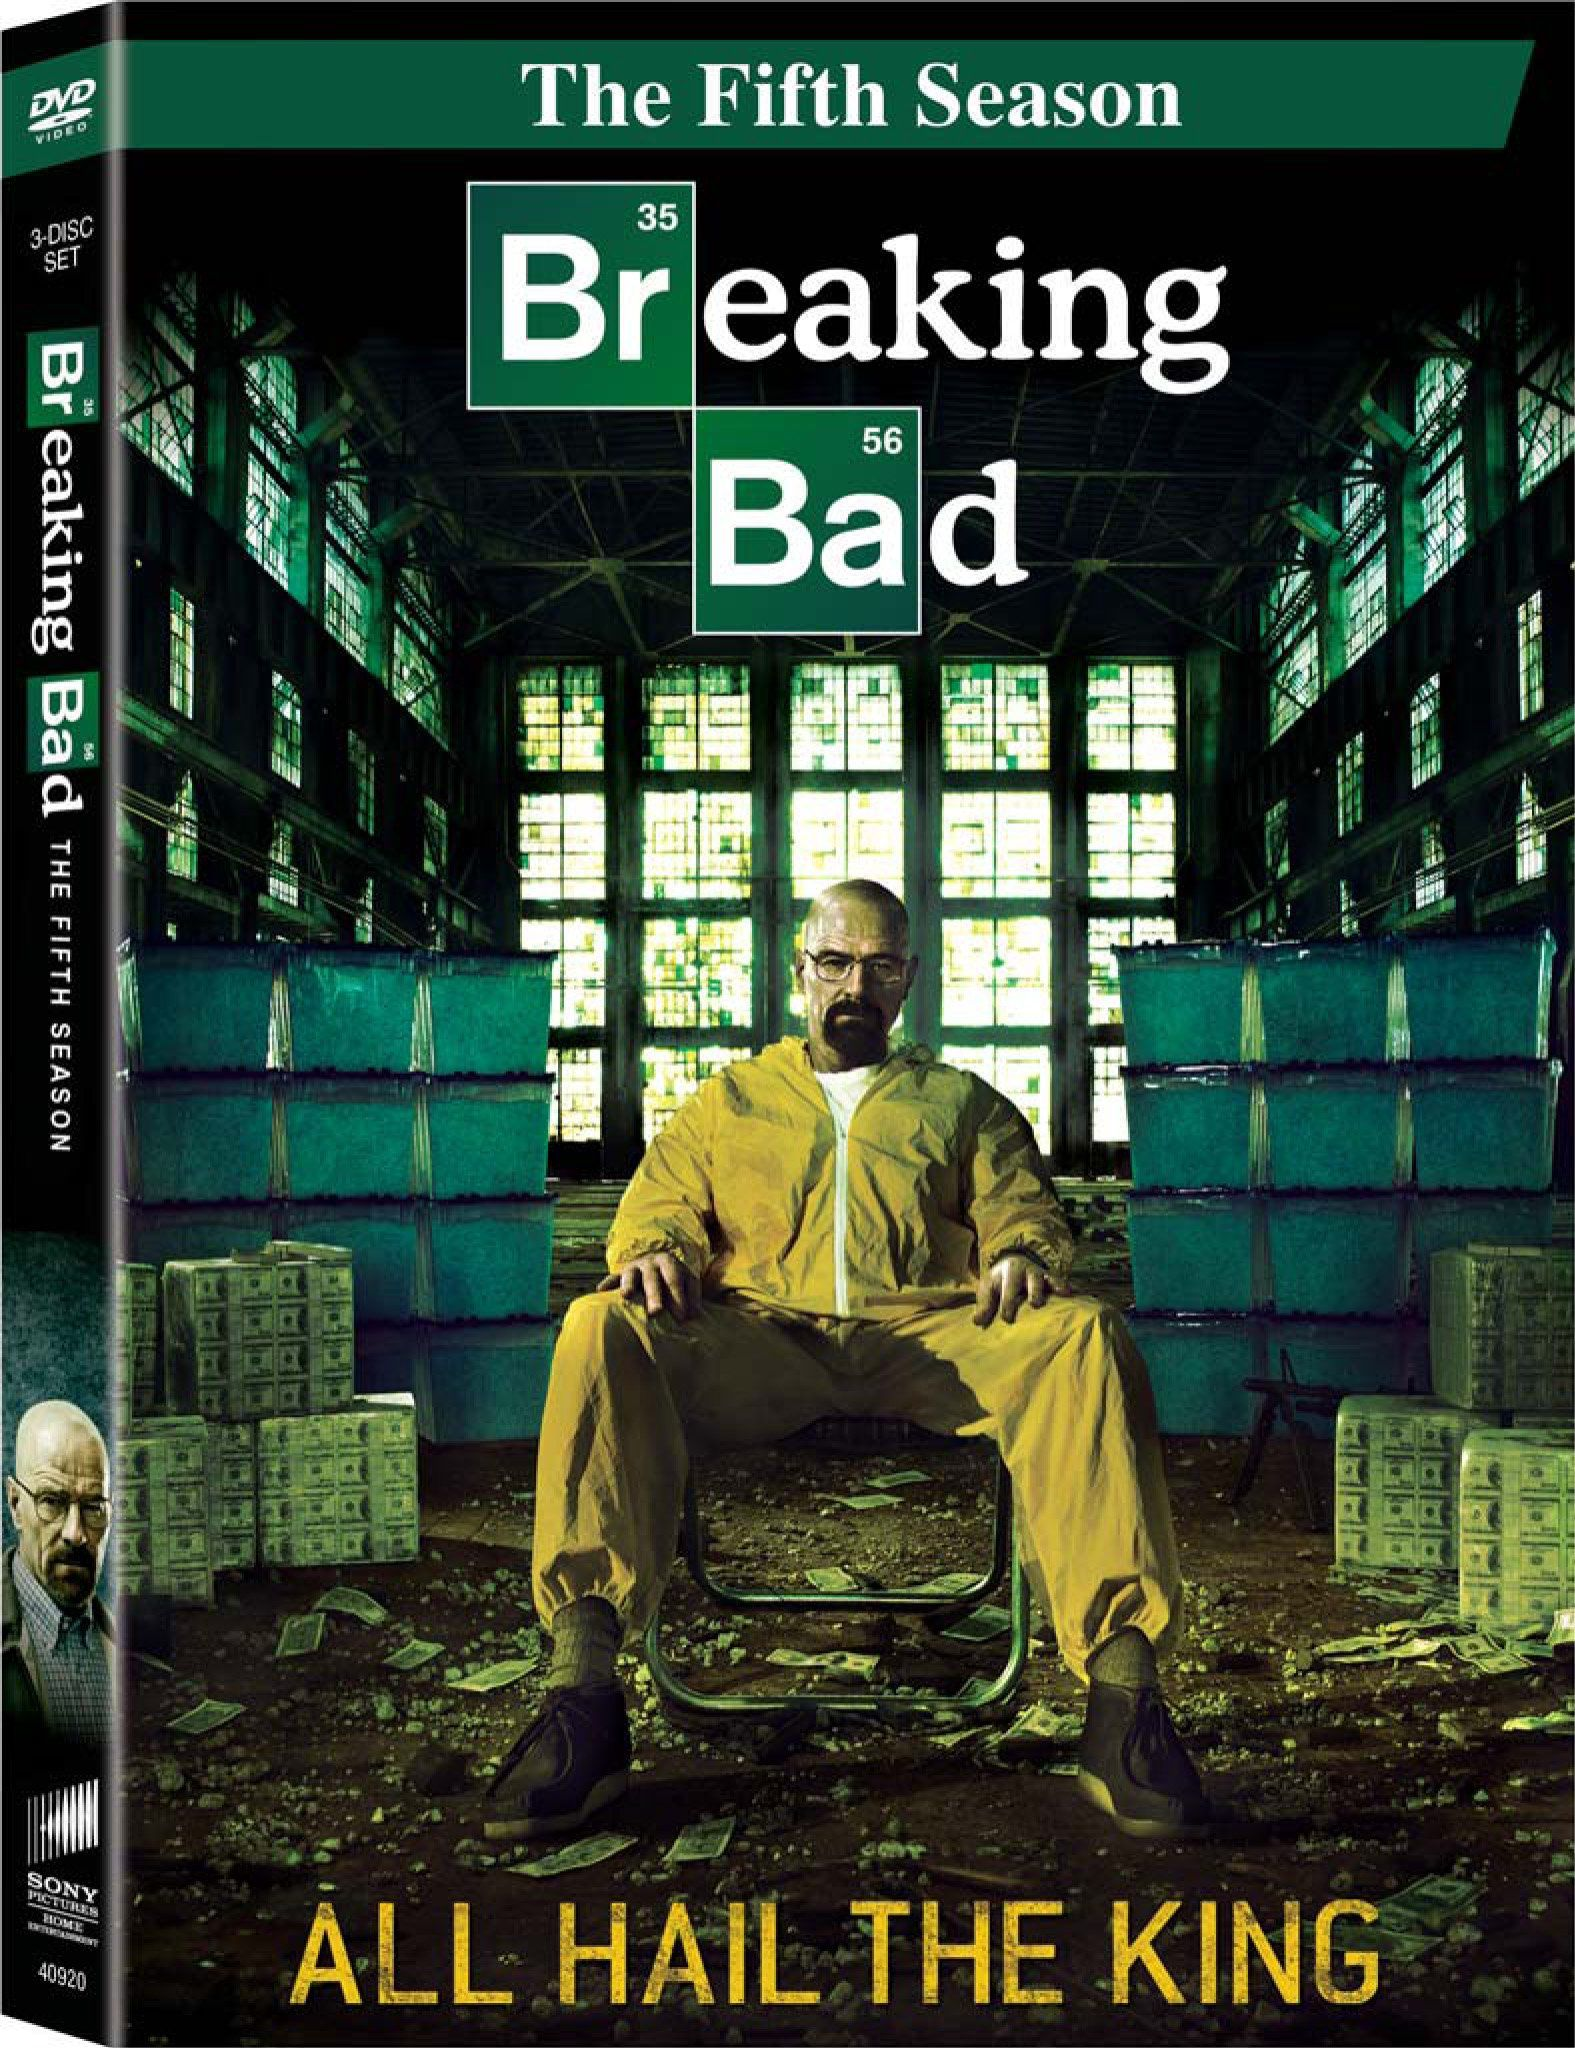 Is Breaking Bad the best boxset ever released or is there a better one?